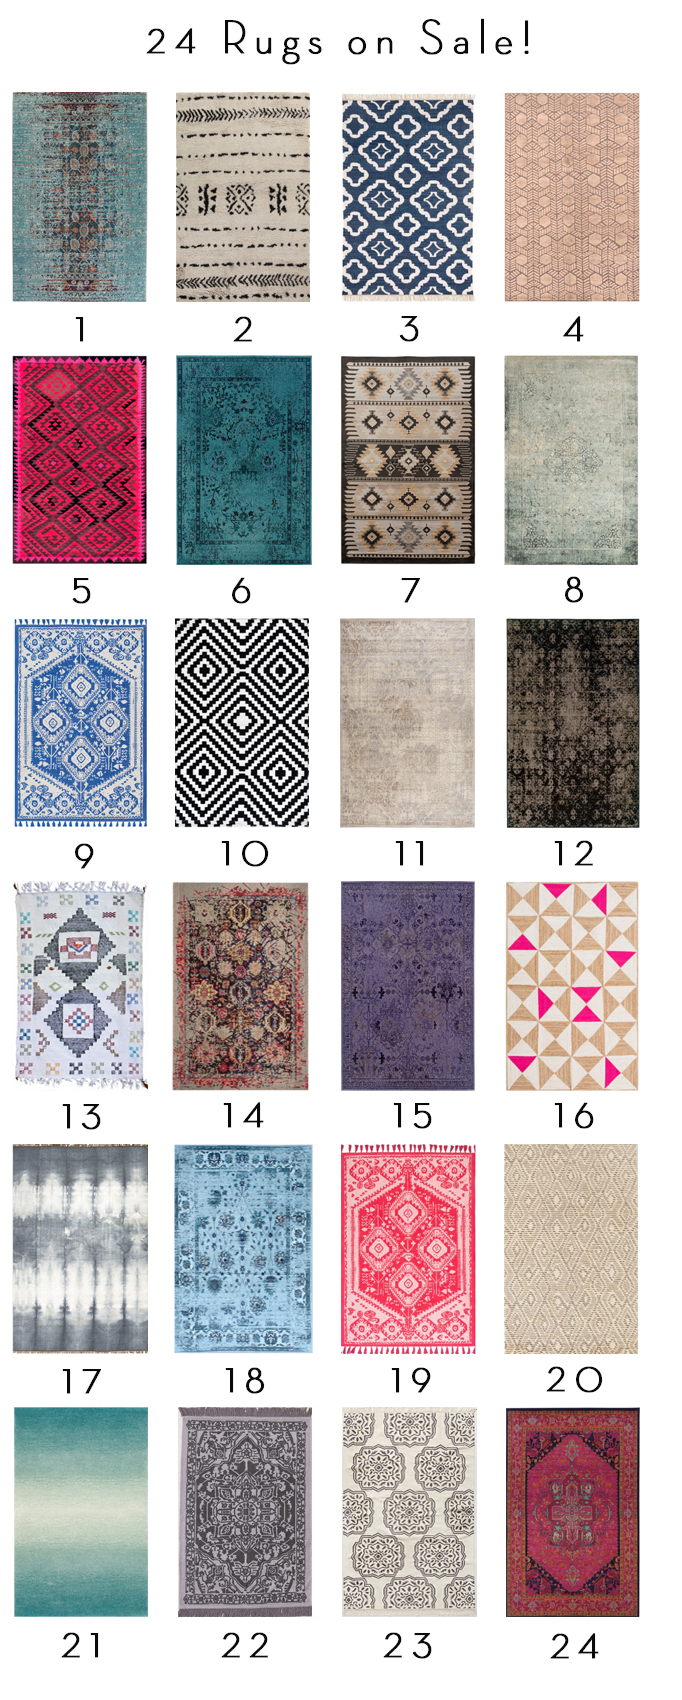 24 Rugs on Sale — New for Spring